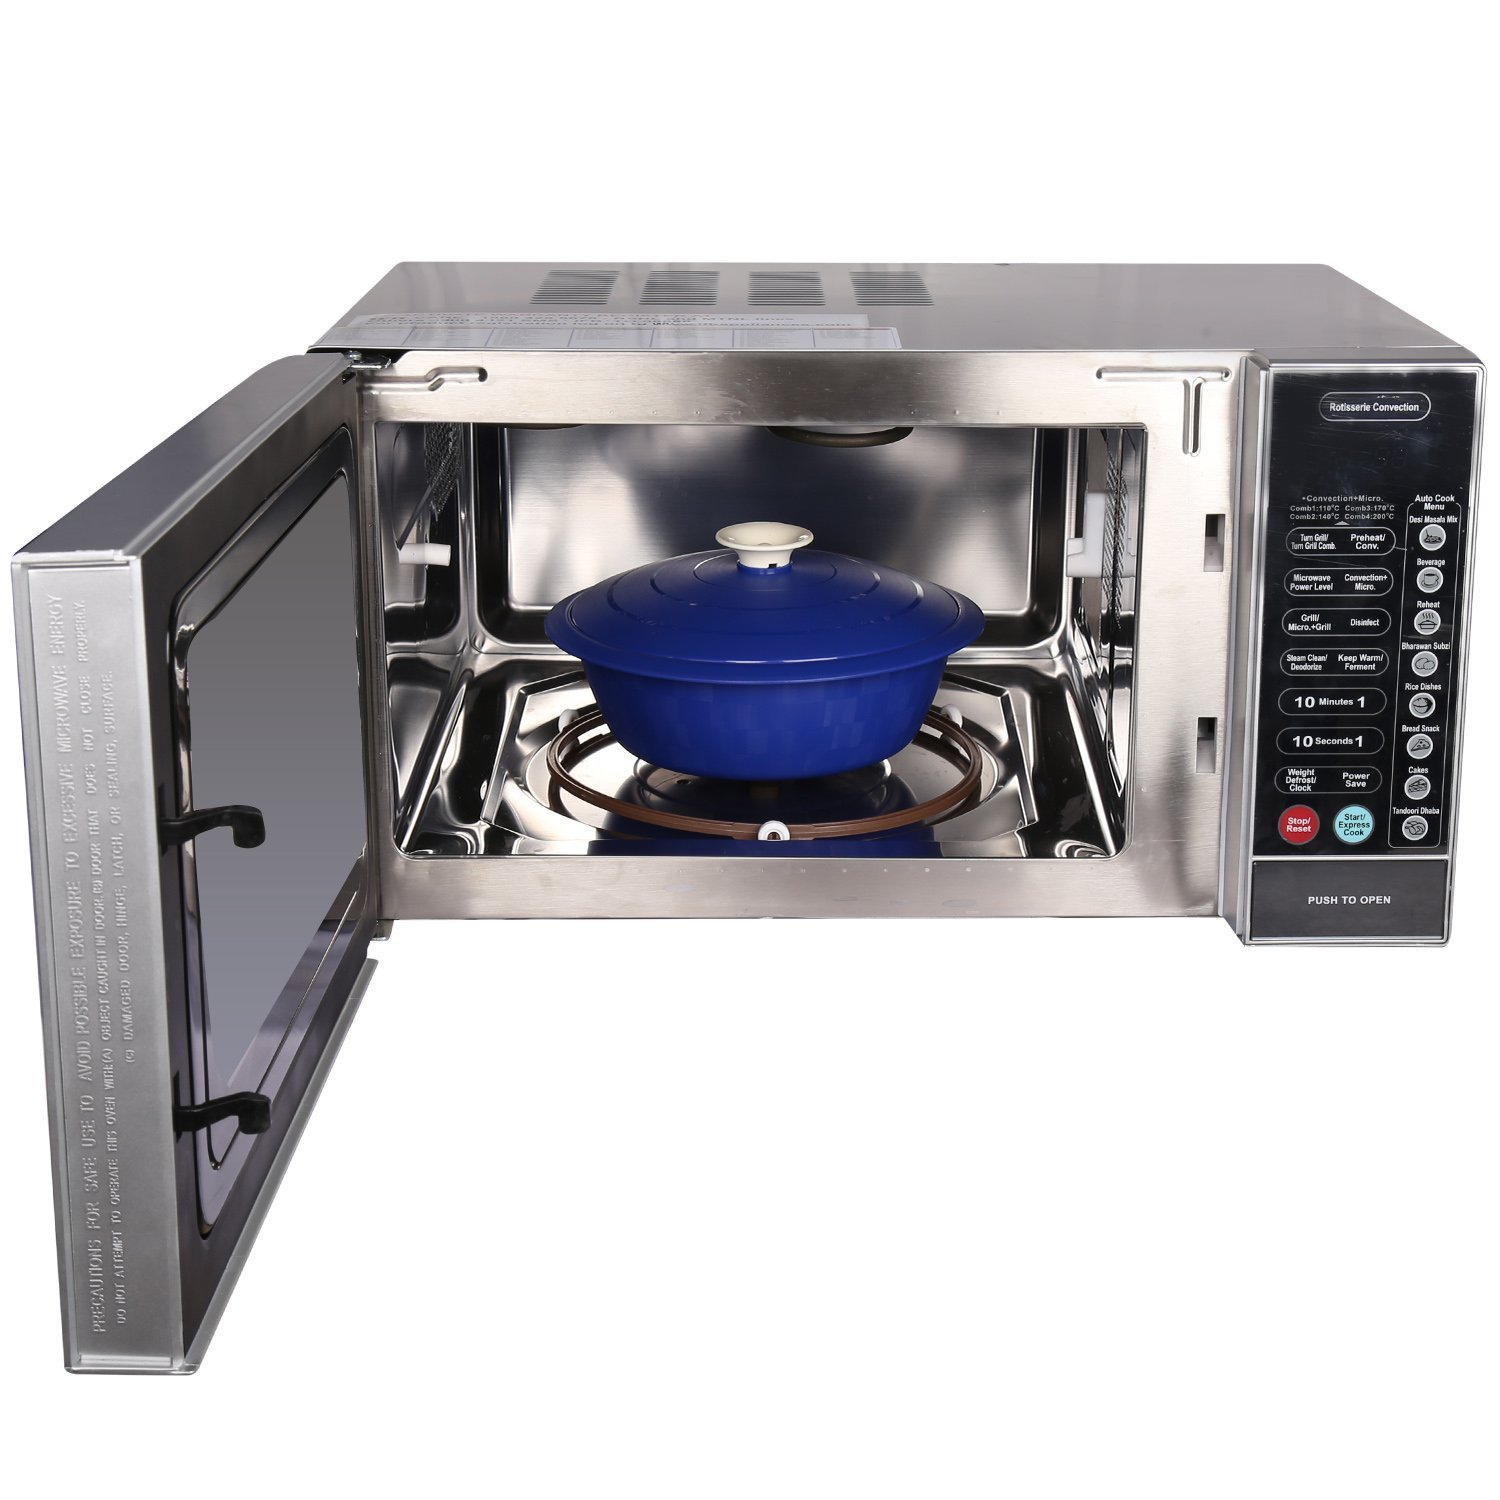 IFB microwave Oven convection mode